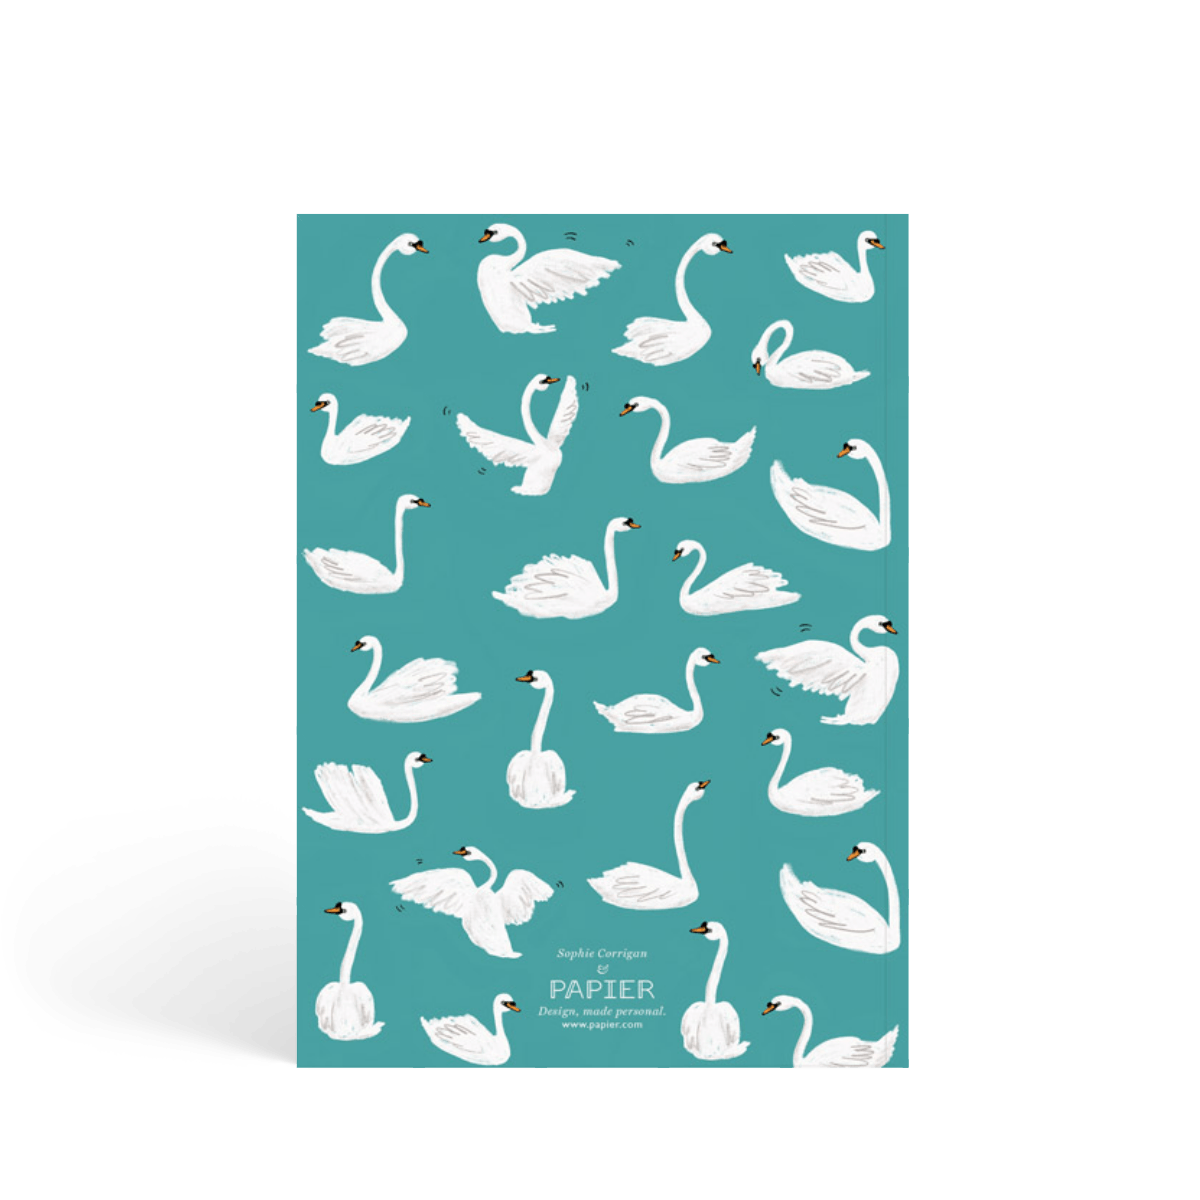 Https%3a%2f%2fwww.papier.com%2fproduct image%2f57153%2f5%2fblue swans 13726 back 1542370462.png?ixlib=rb 1.1